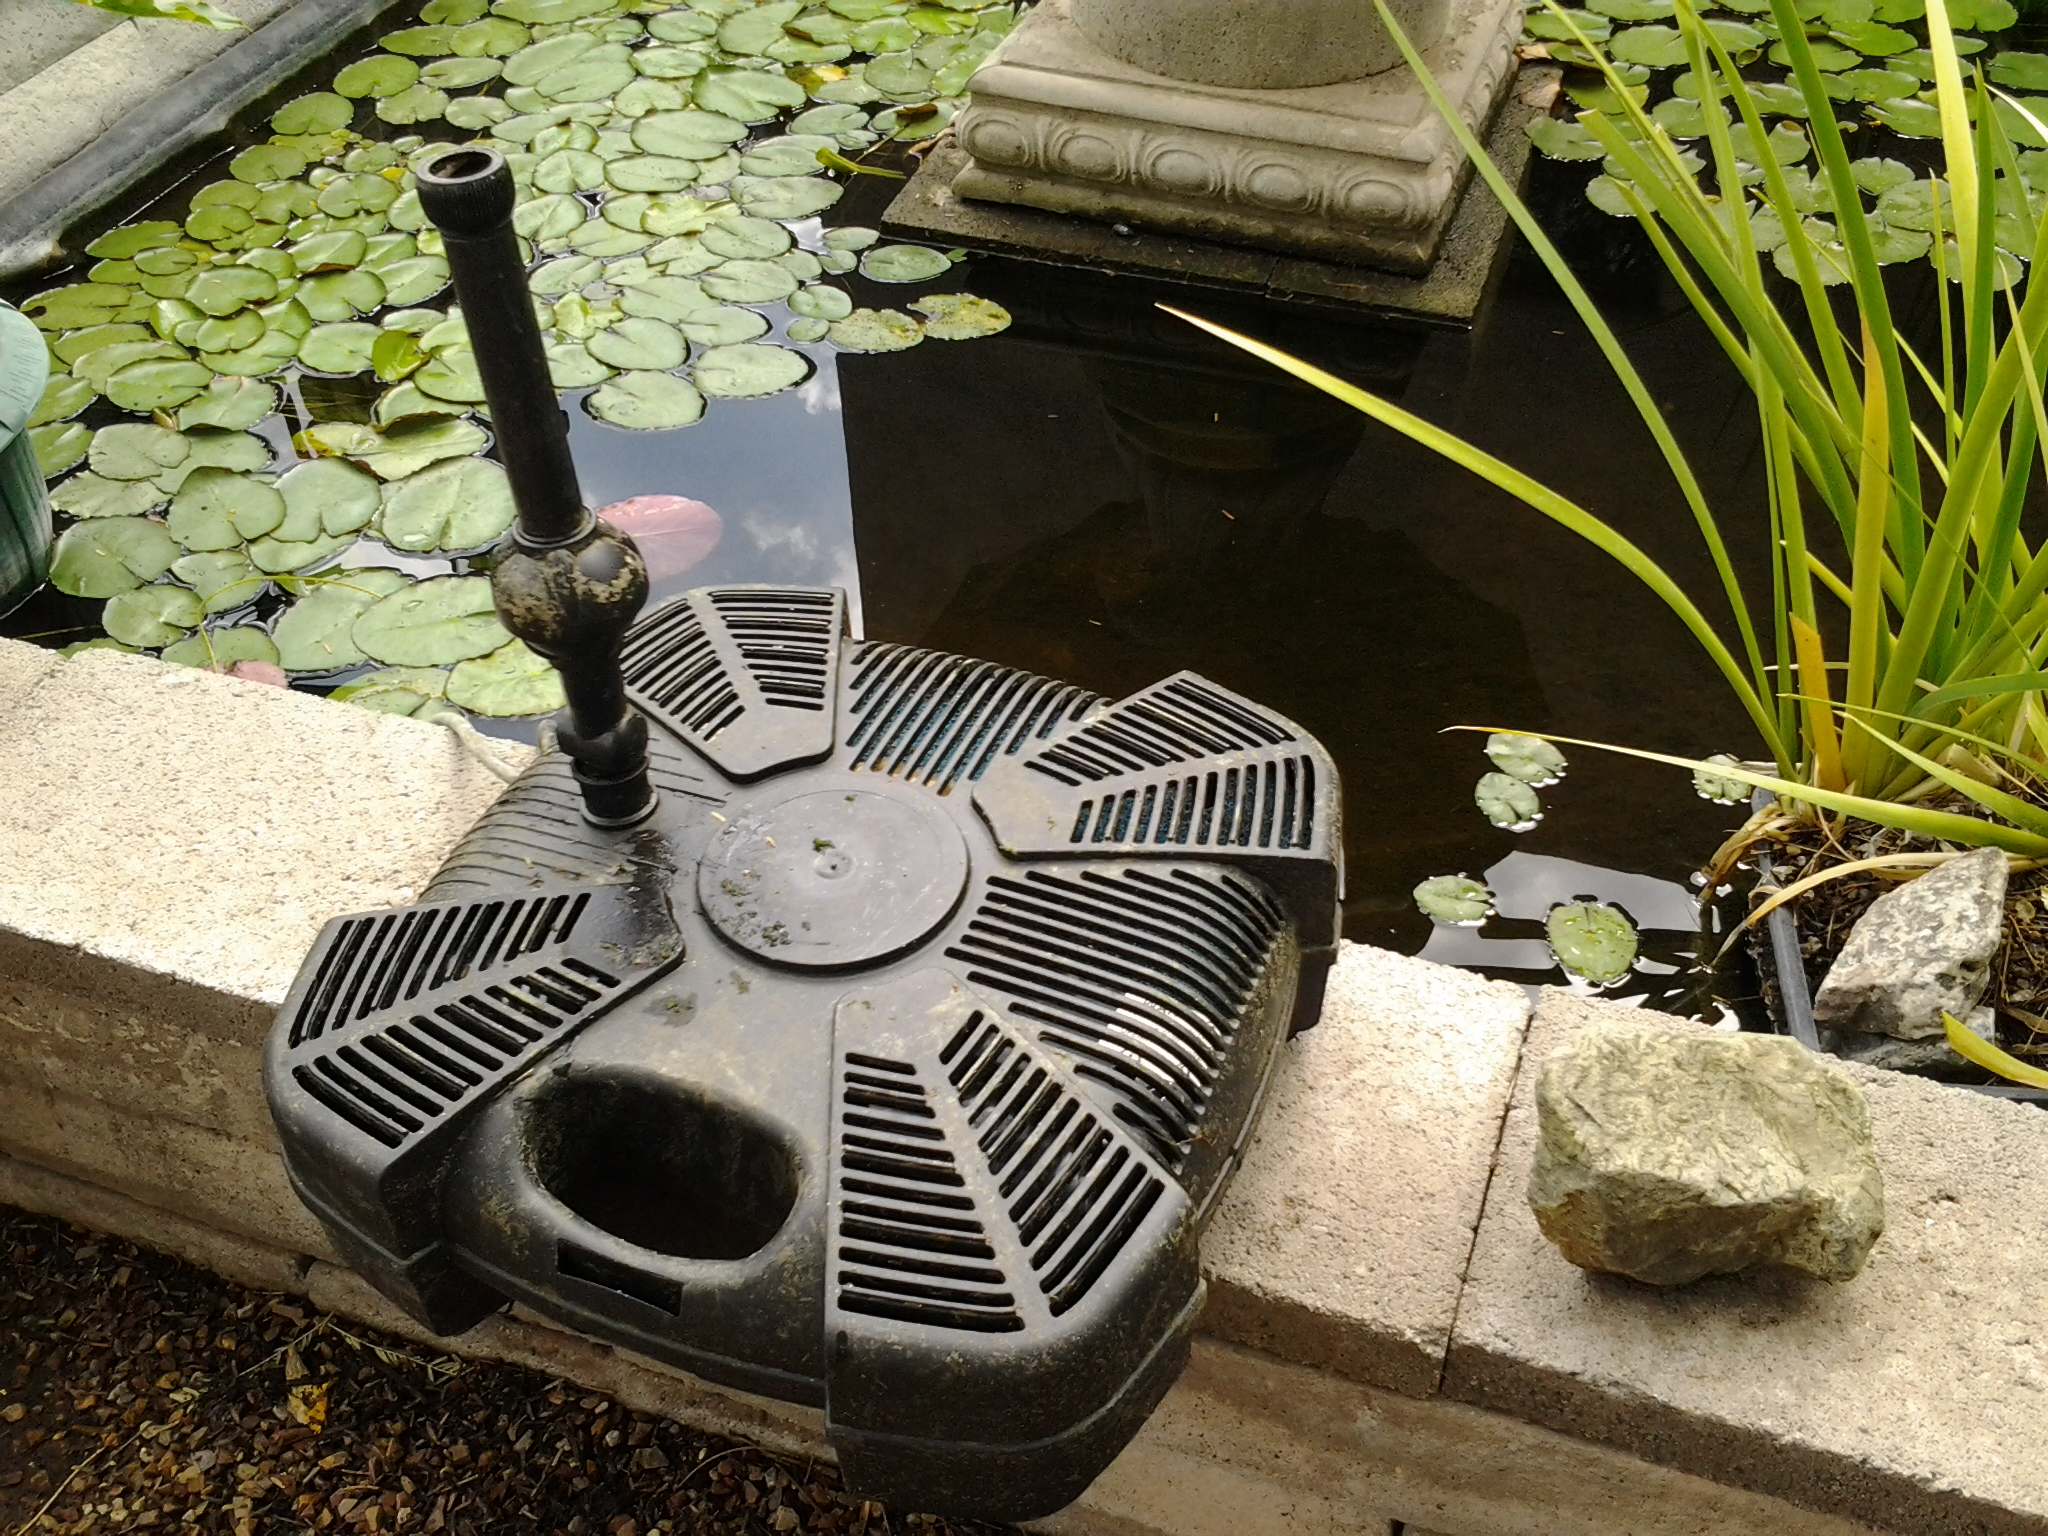 Best pond filter system all in one lifegard pump with uv for Garden pond pump filters